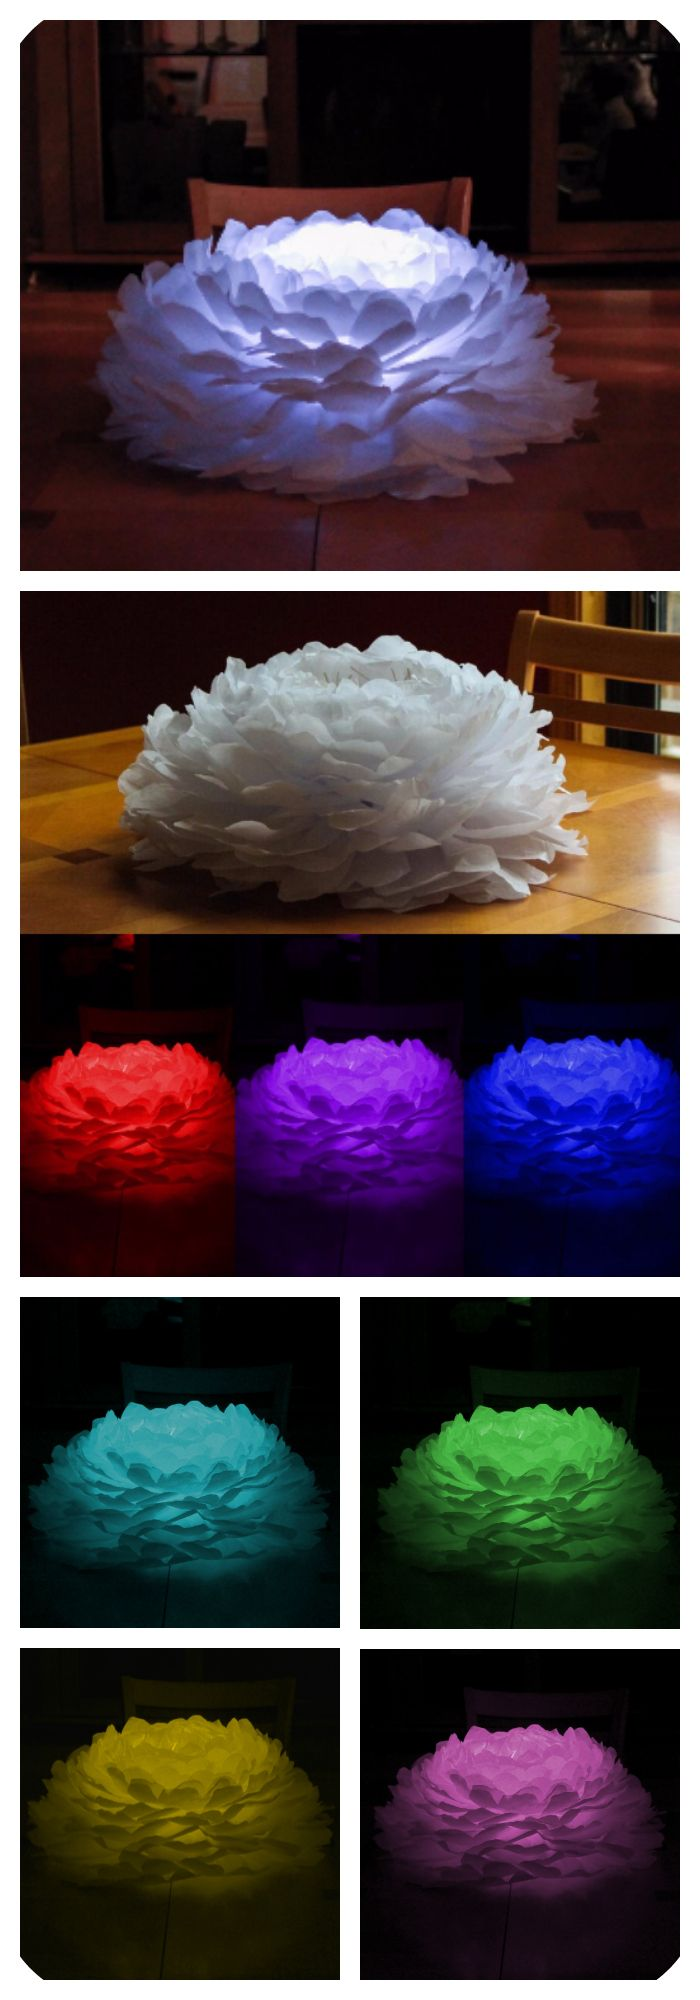 "Light up paper flower.  Beautiful centerpiece for weddings and events.  Each 20"" flower is capable of providing multiple colors using a remote controlled LED light.  This piece creates the perfect uplight for any occasion."